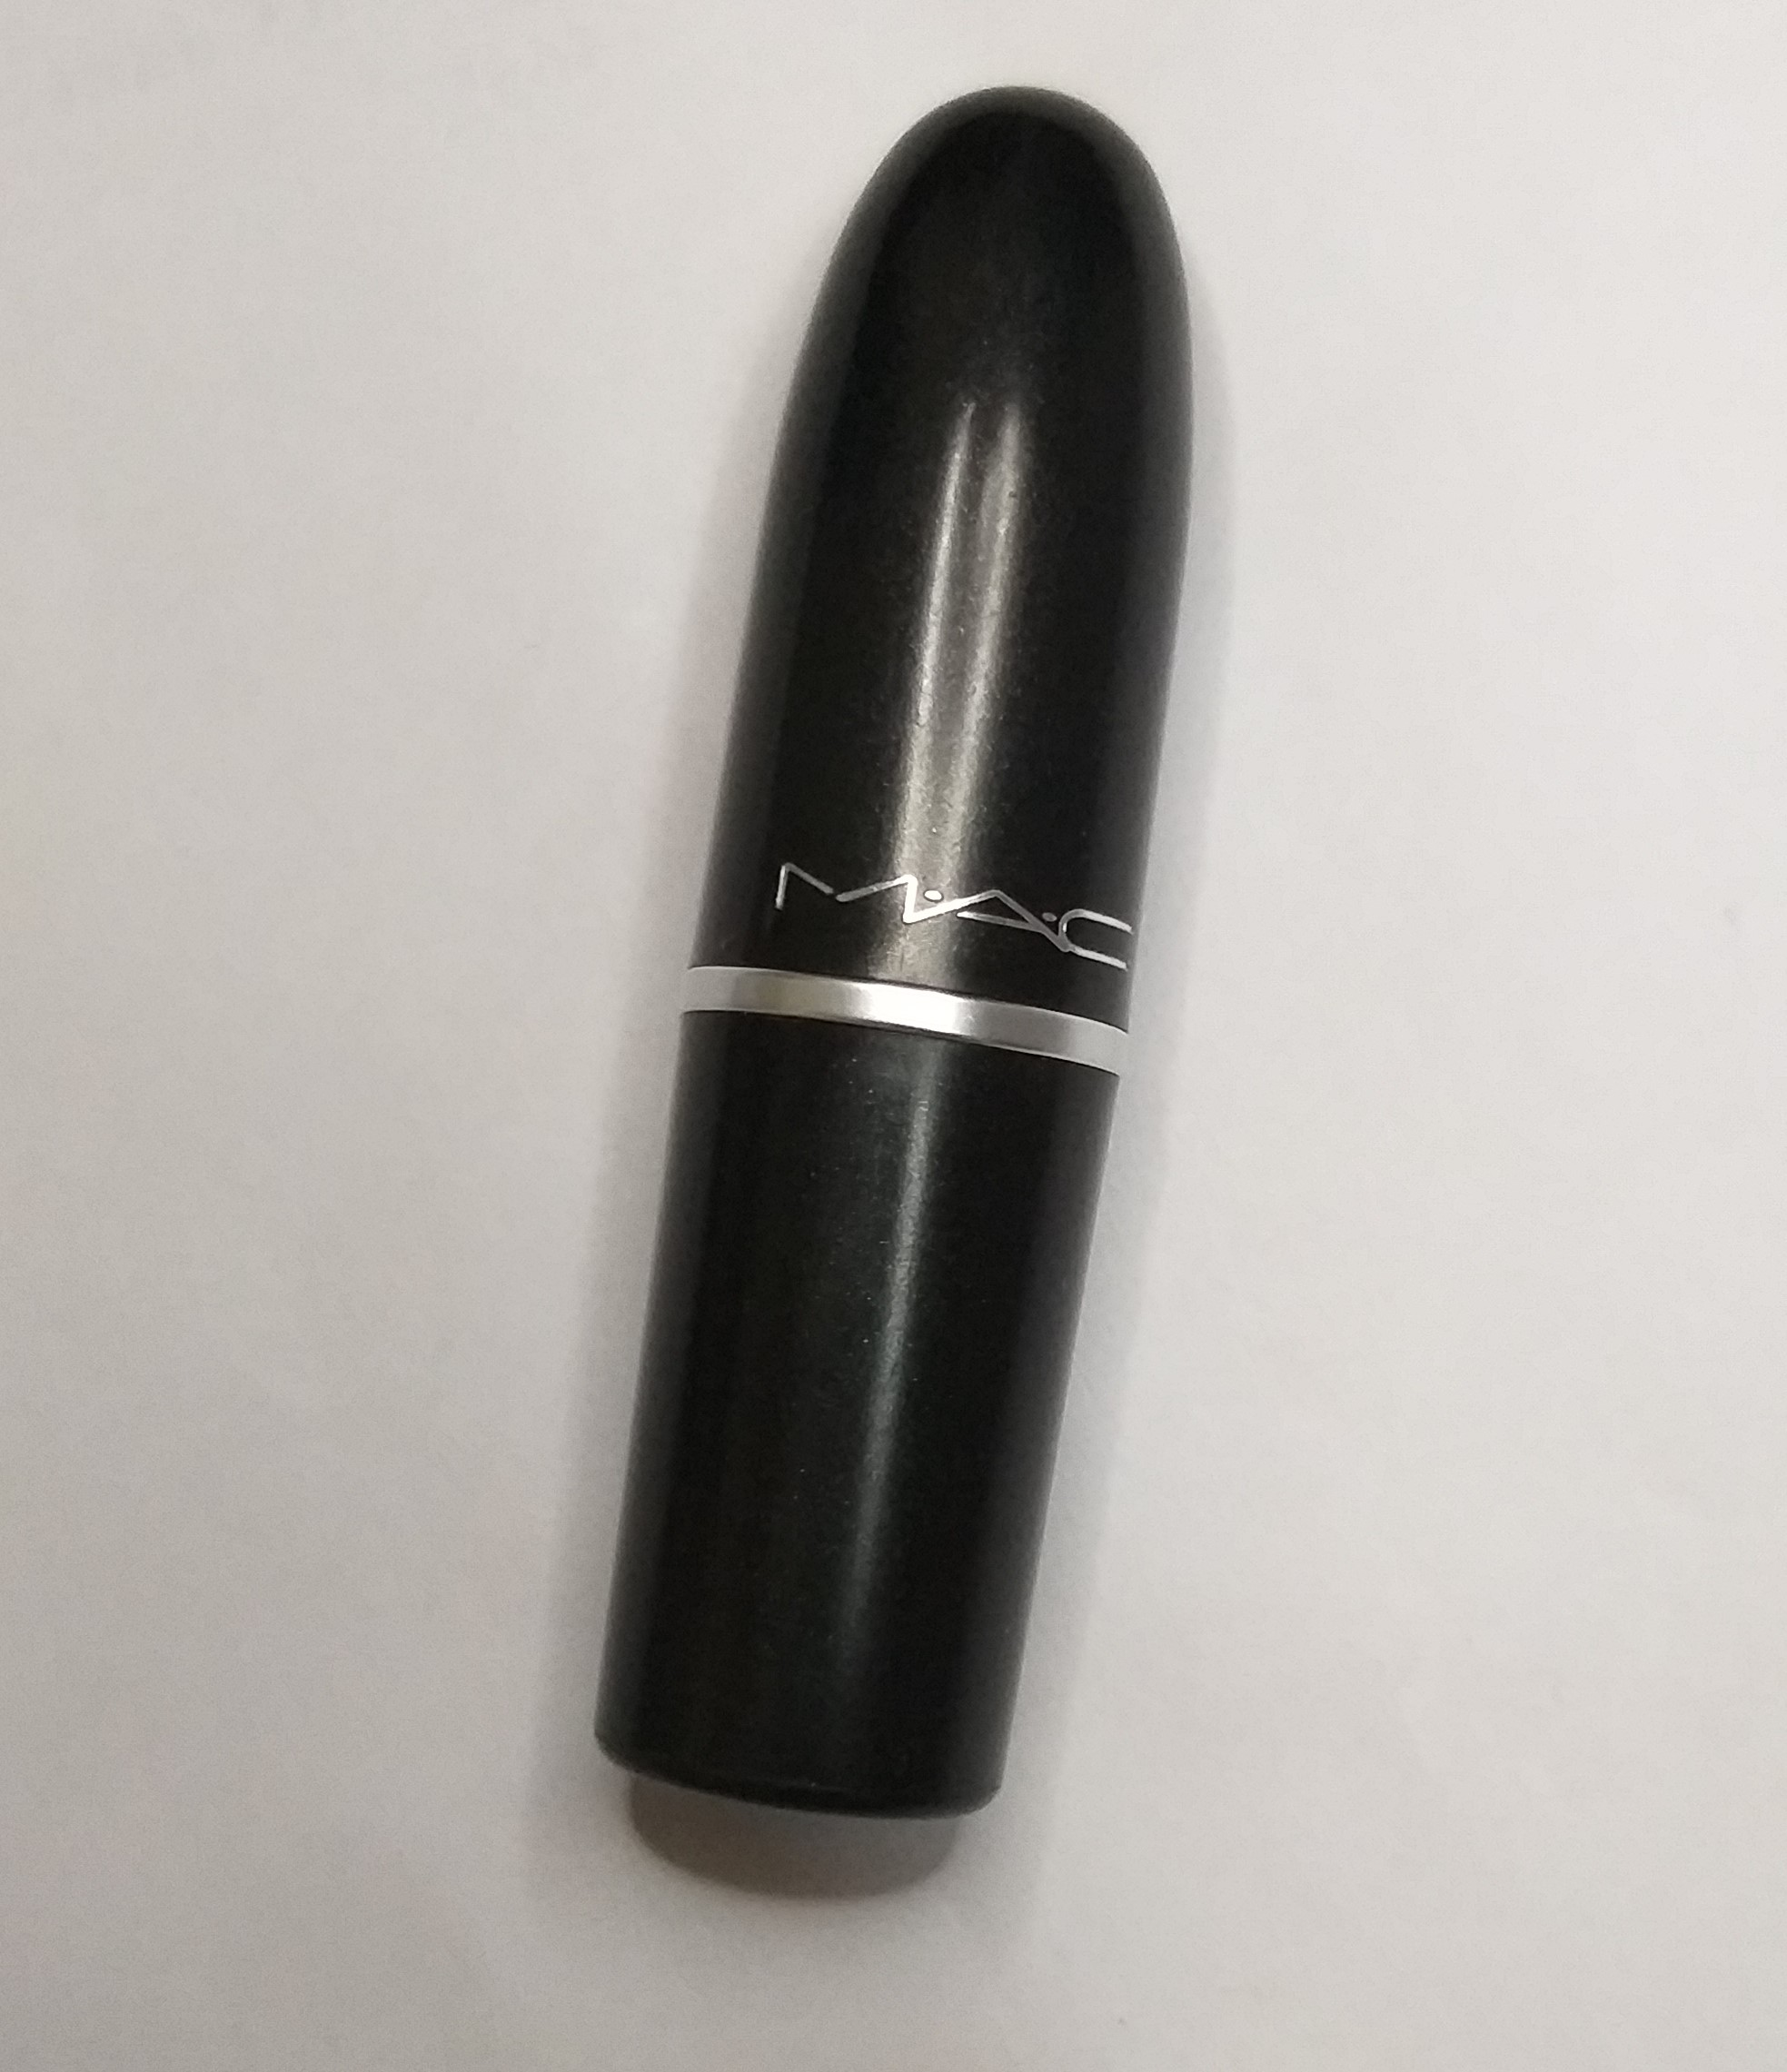 MAC Cremesheen Lipstick-Just the right type of glossy sheen lipstick you need!-By beauty_mommies-1